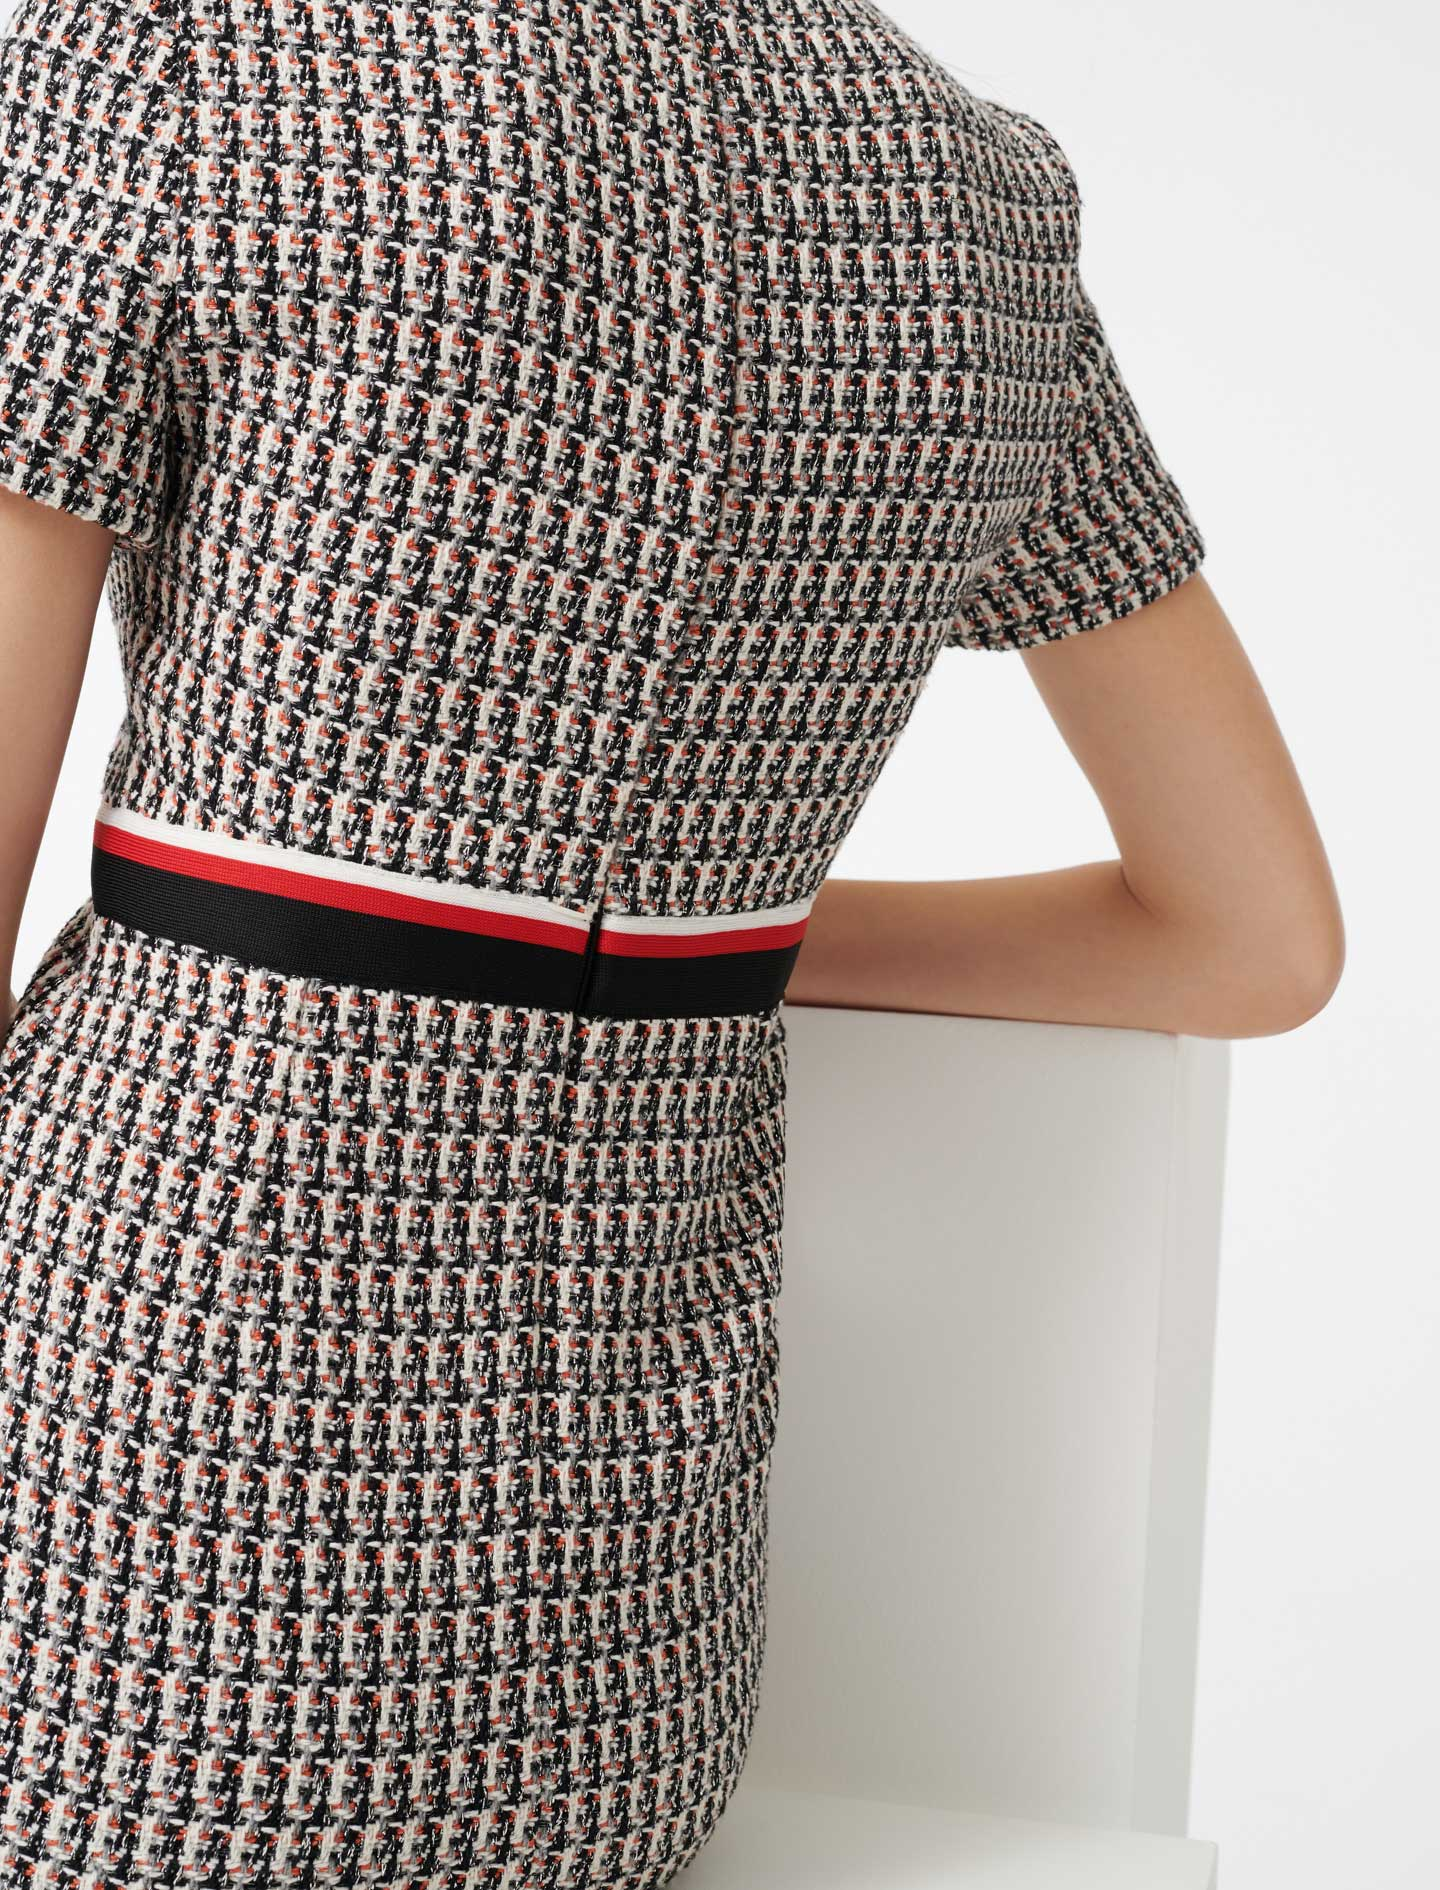 Lurex tweed style dress with bands  - Multi-colour